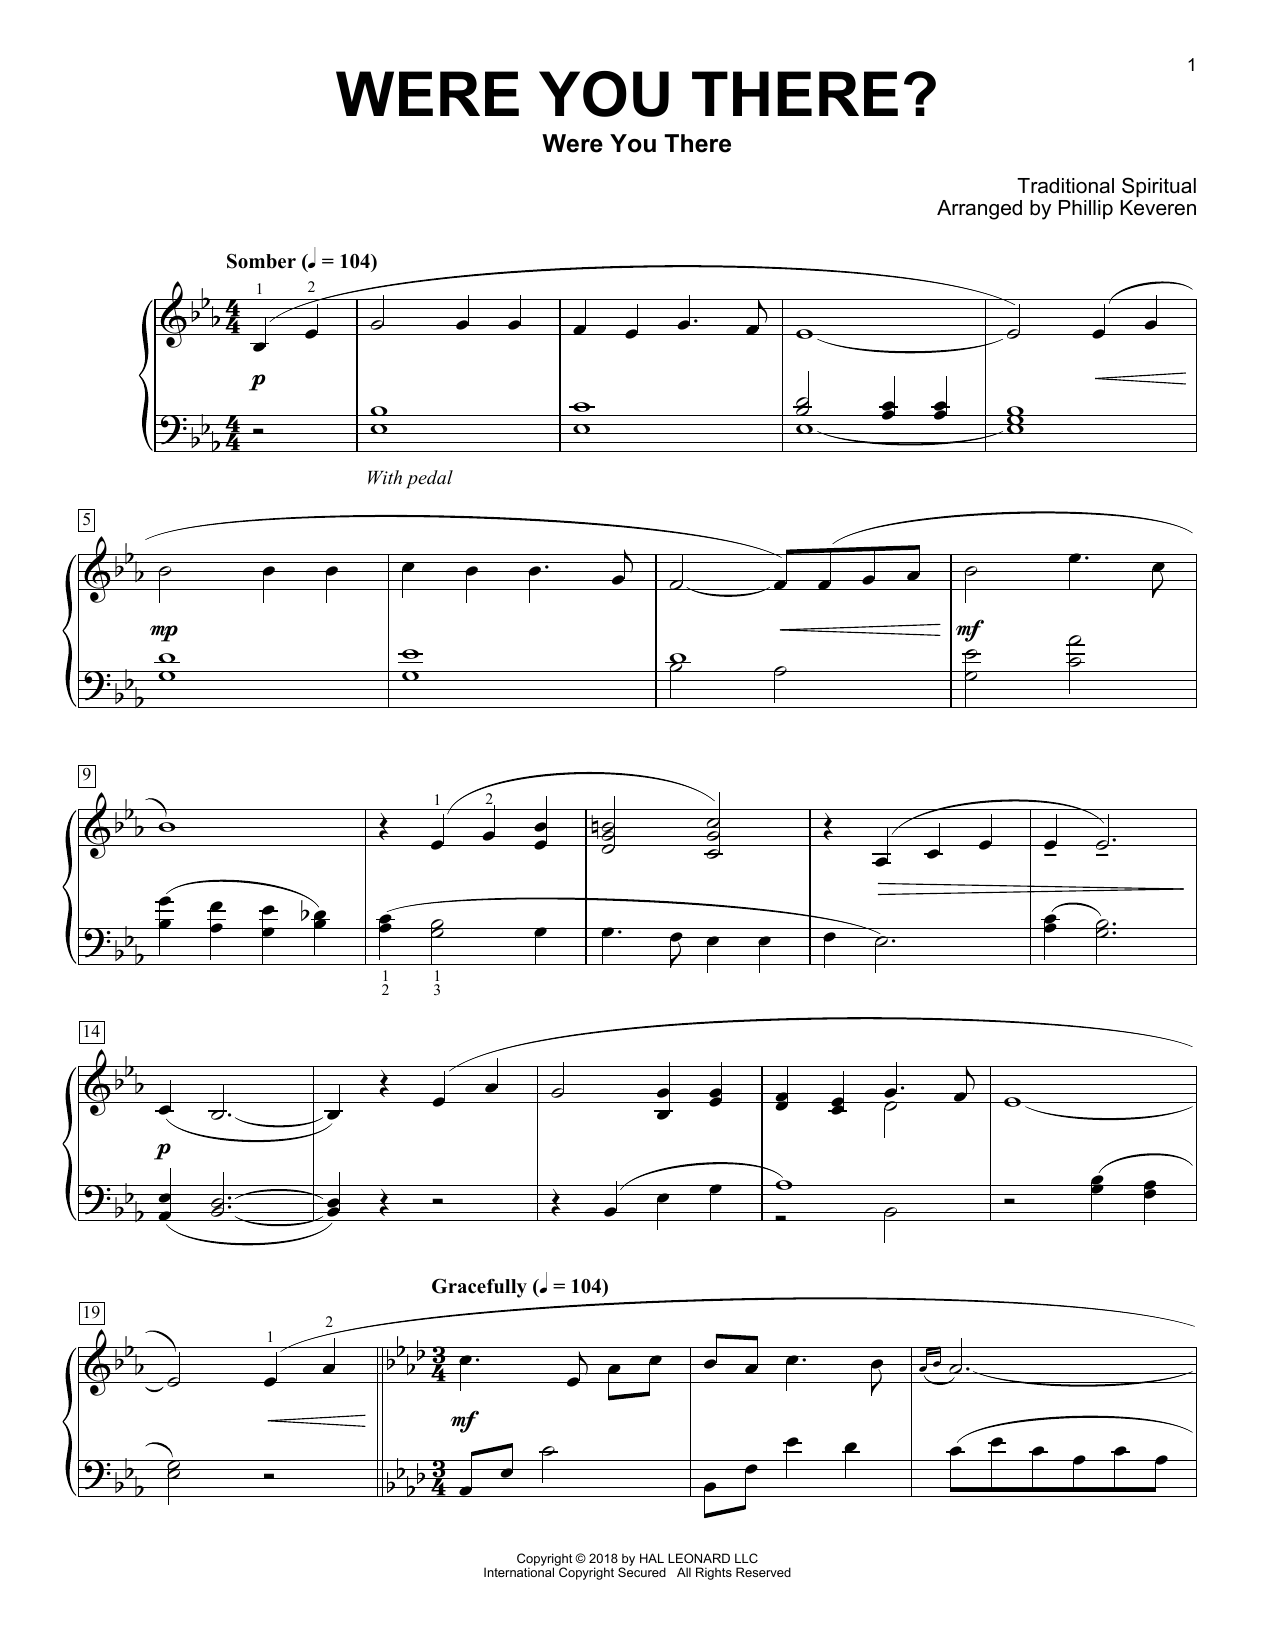 Traditional Spiritual Were You There? [Classical version] (arr. Phillip Keveren) sheet music notes and chords. Download Printable PDF.